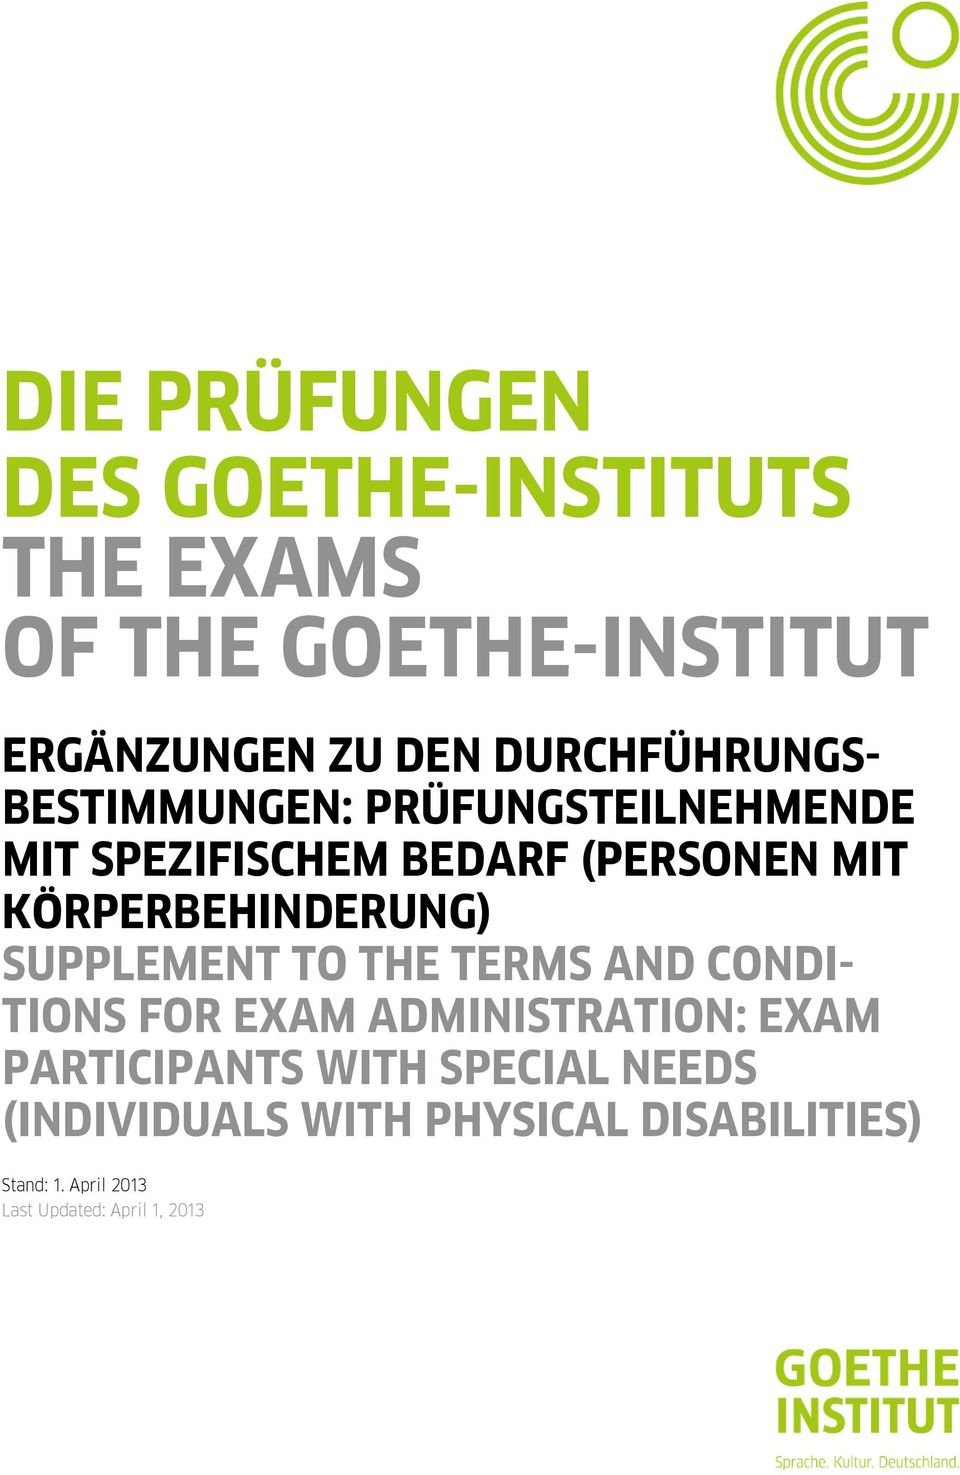 KÖRPERBEHINDERUNG) SUPPLEMENT TO THE TERMS AND CONDI- TIONS FOR EXAM ADMINISTRATION: EXAM